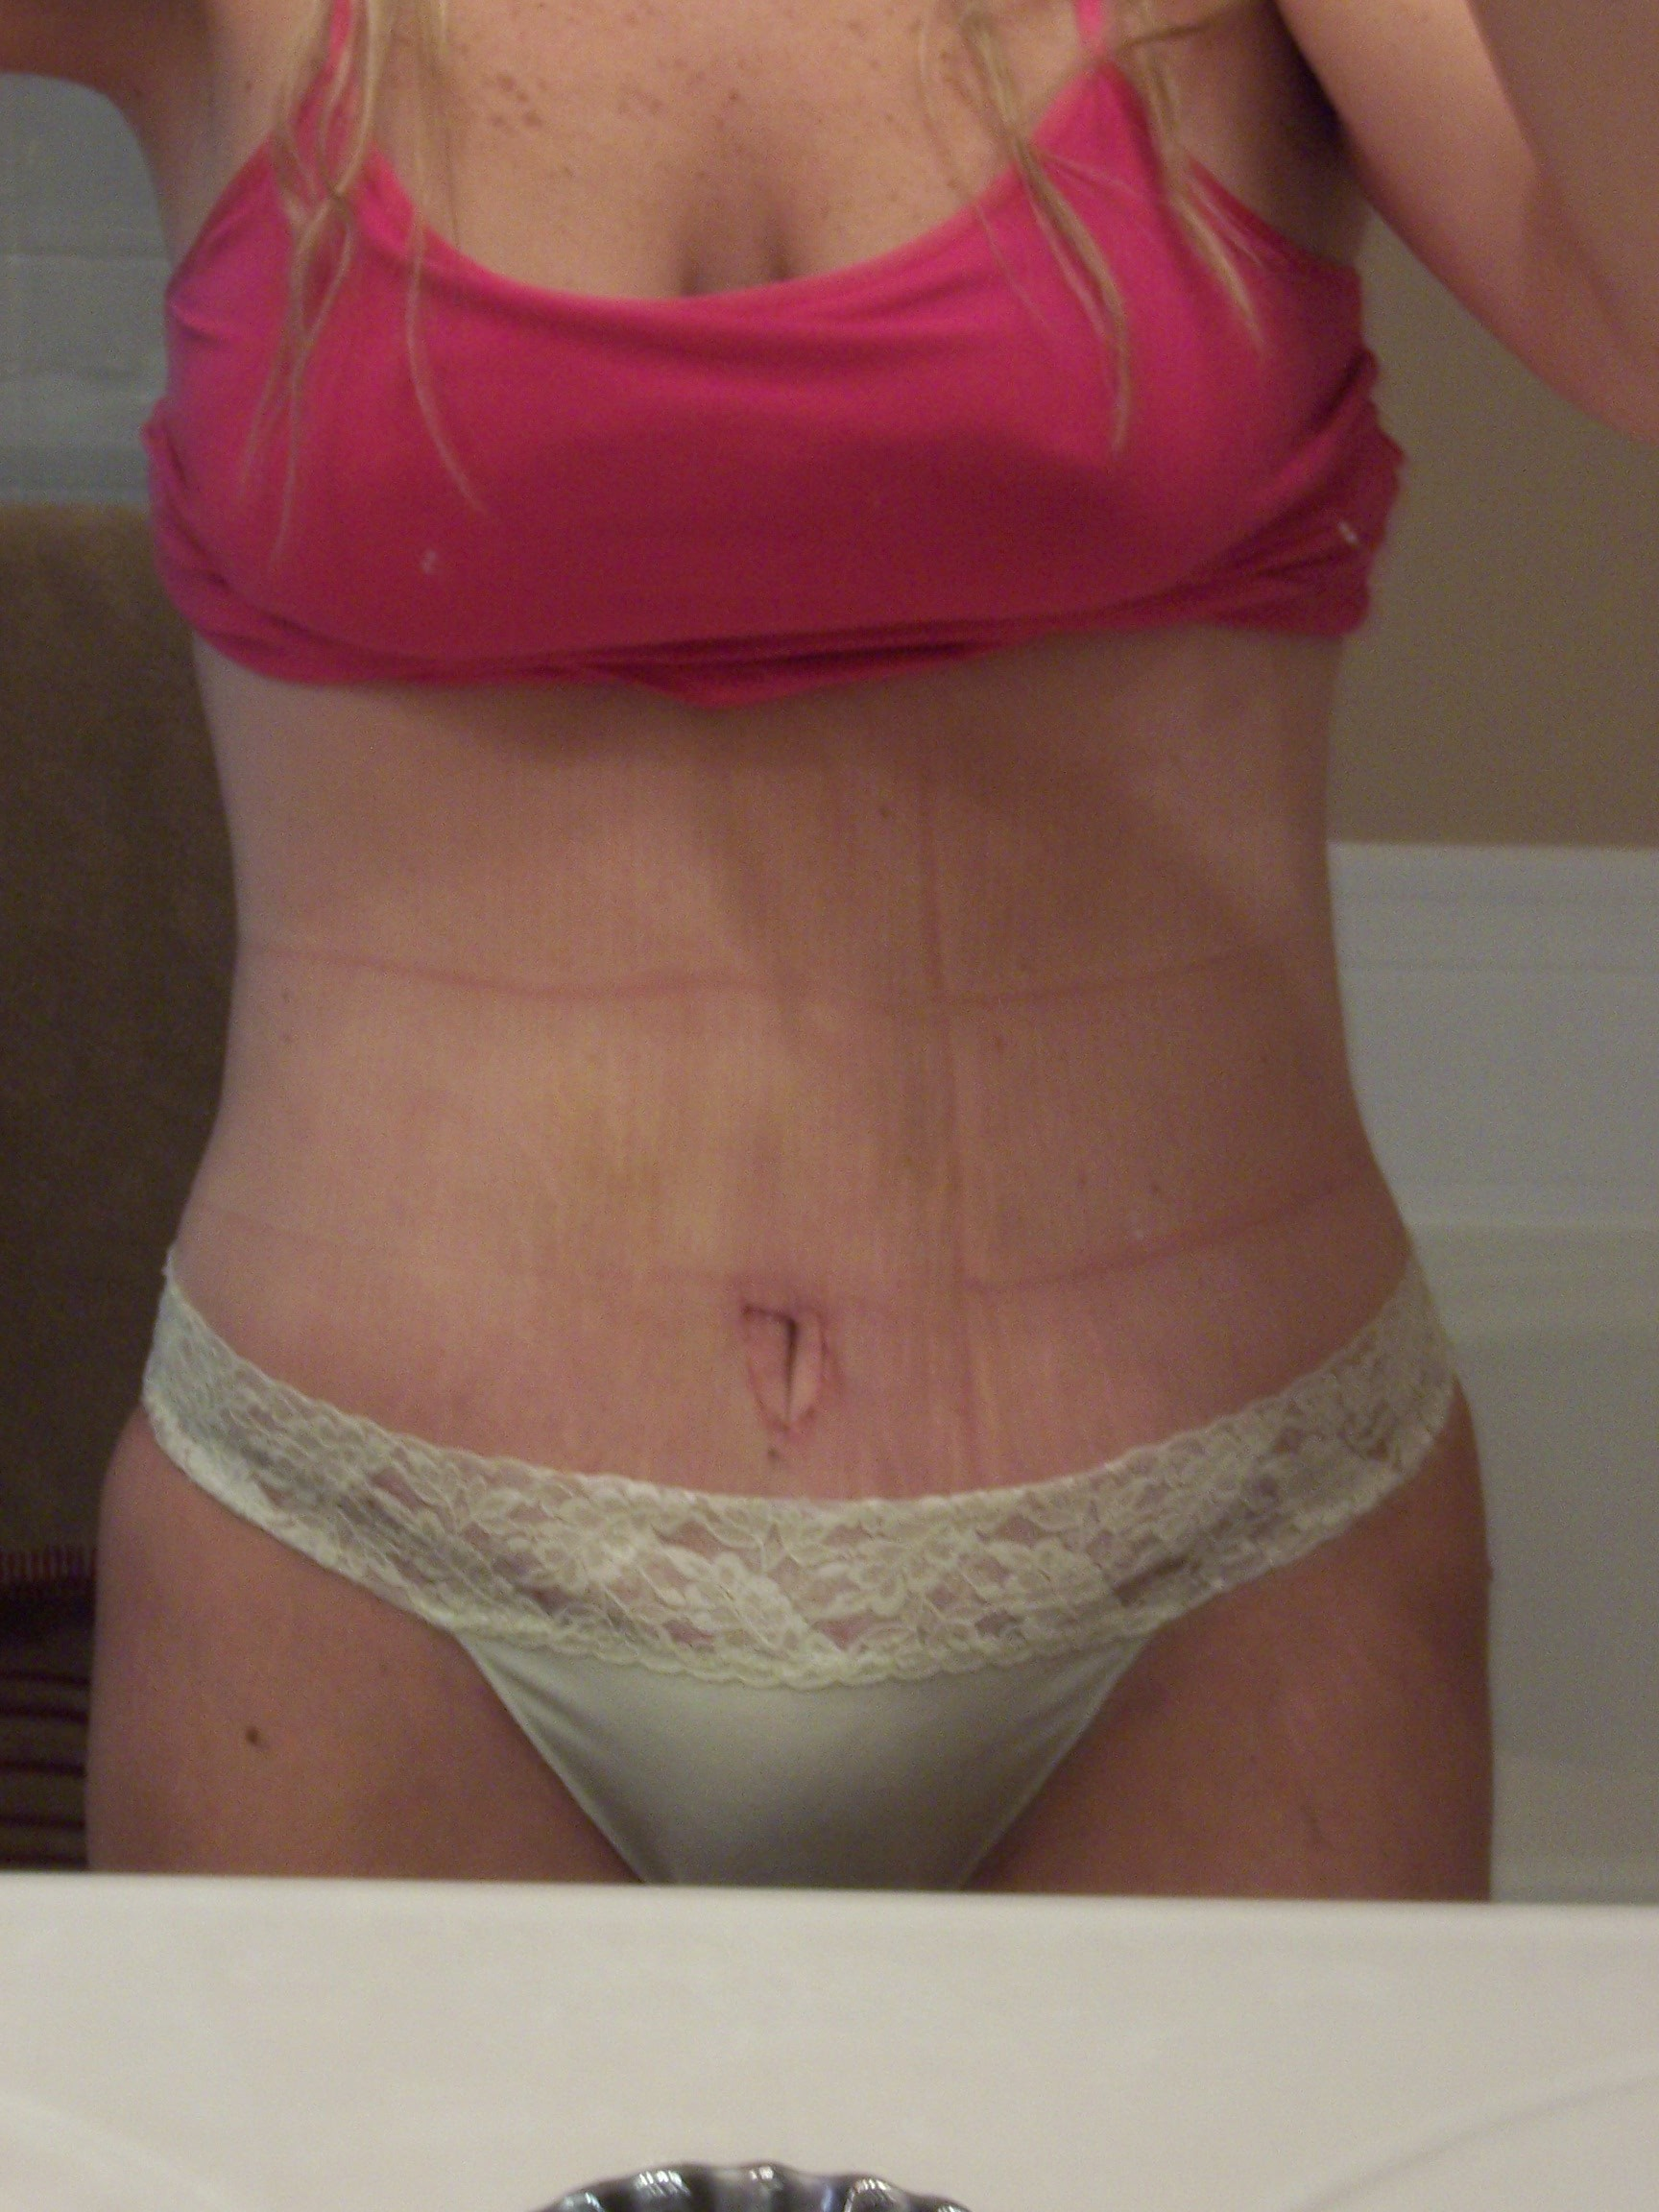 Post op day 9 panties